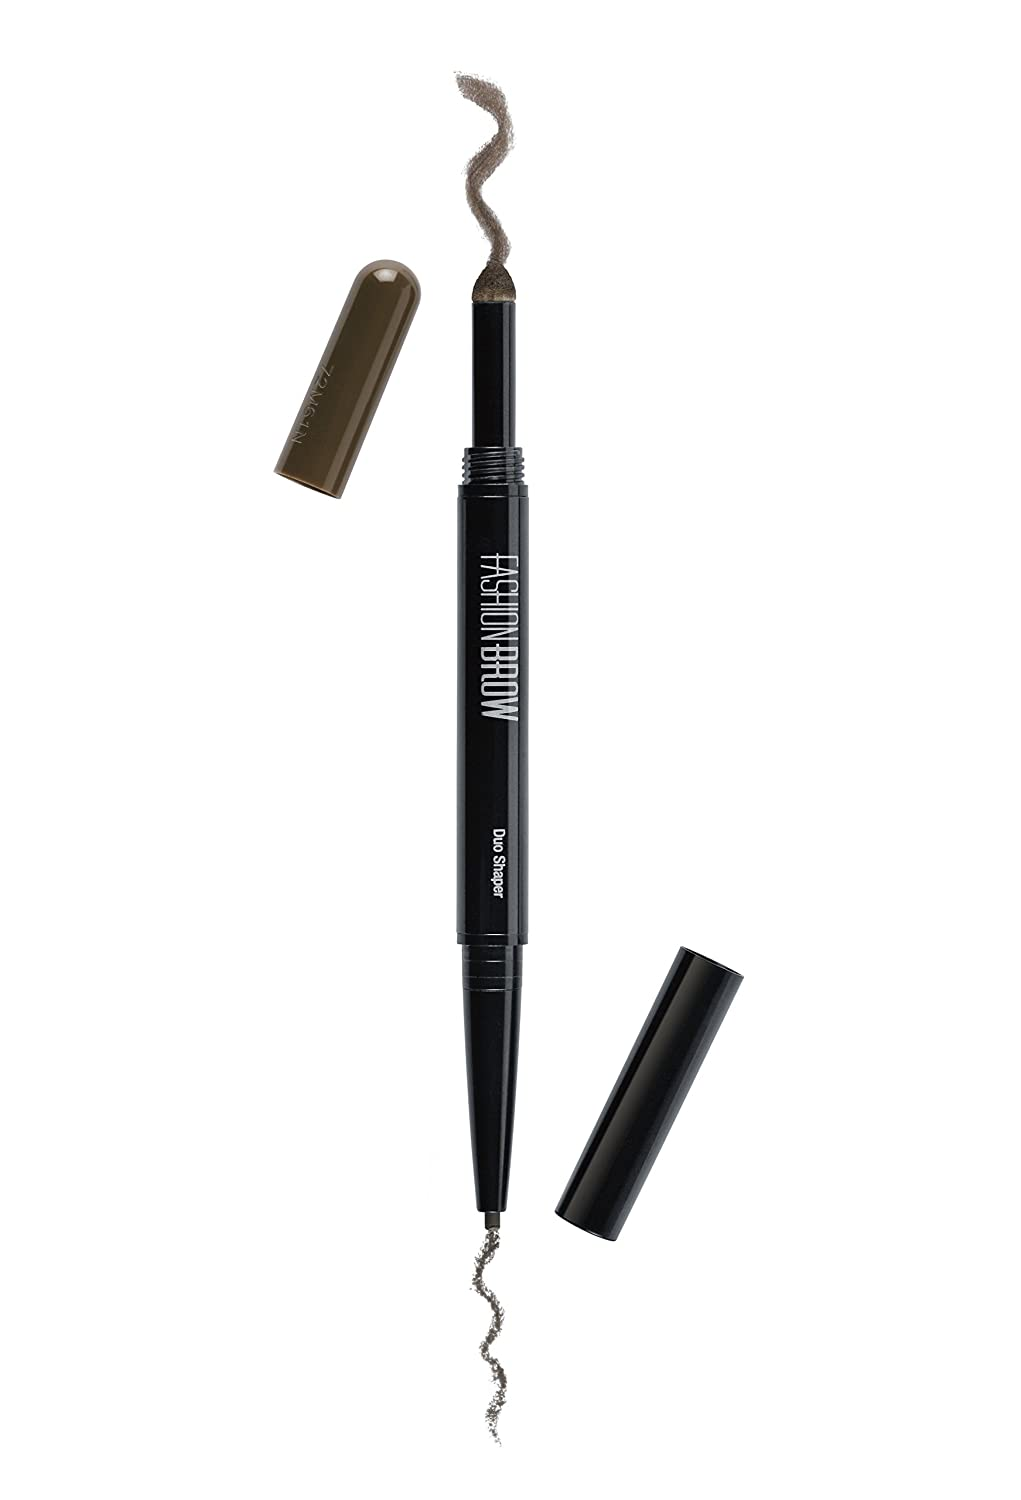 Maybelline New York Fashion Brow Duo Shaper